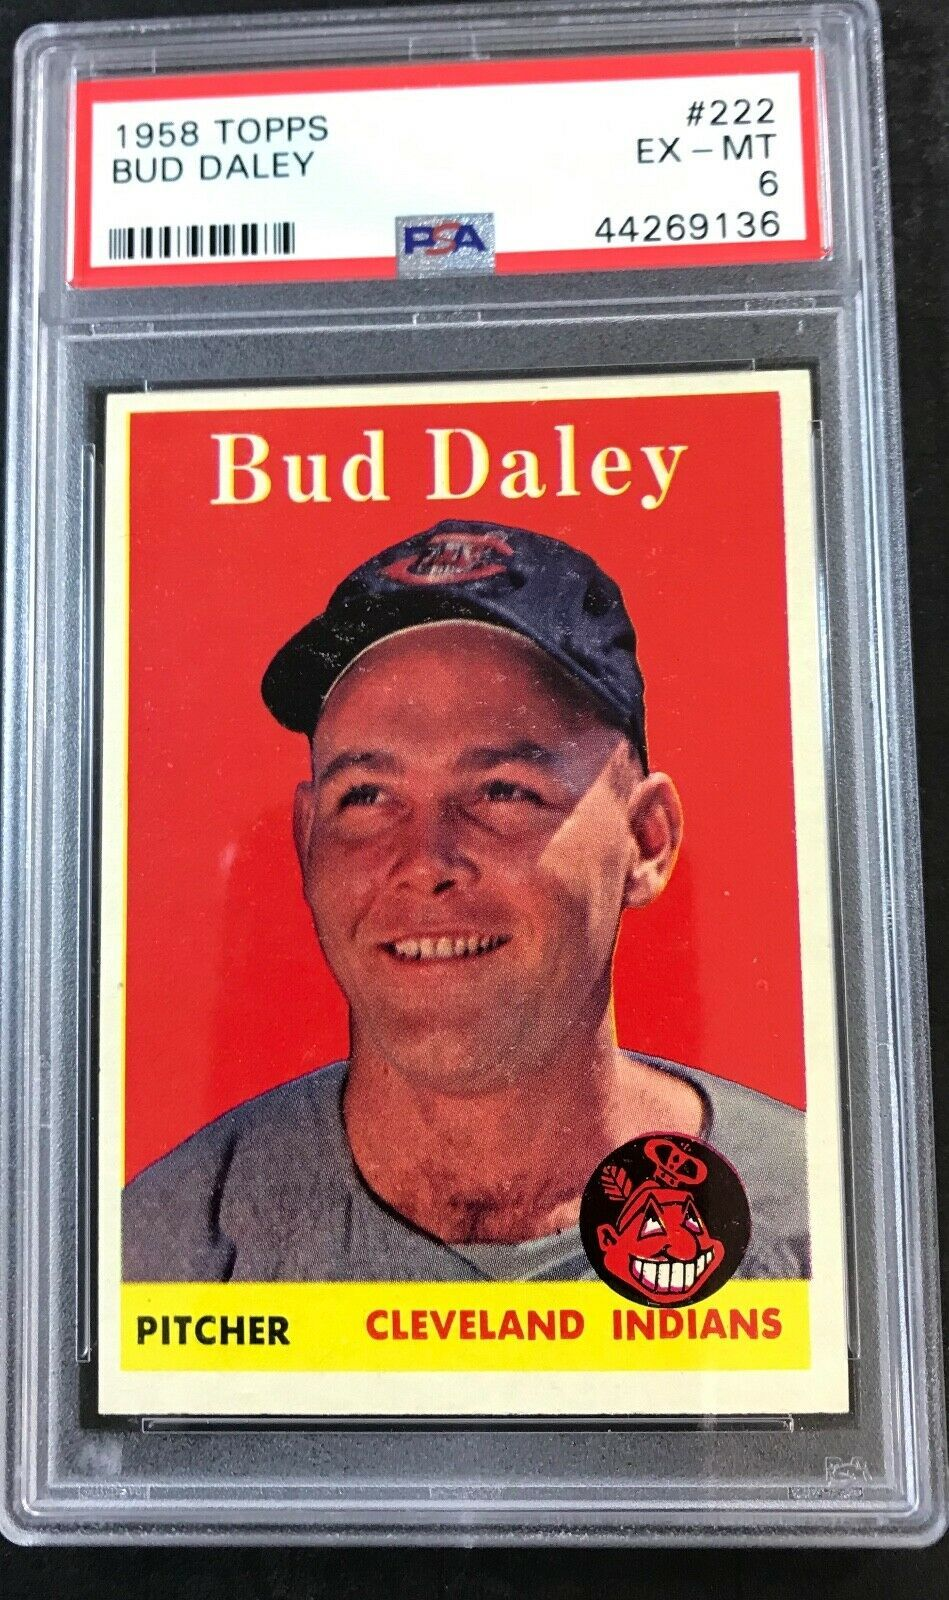 1958 TOPPS #222 BUD DALEY PSA 6 EX-MT Cleveland Indians